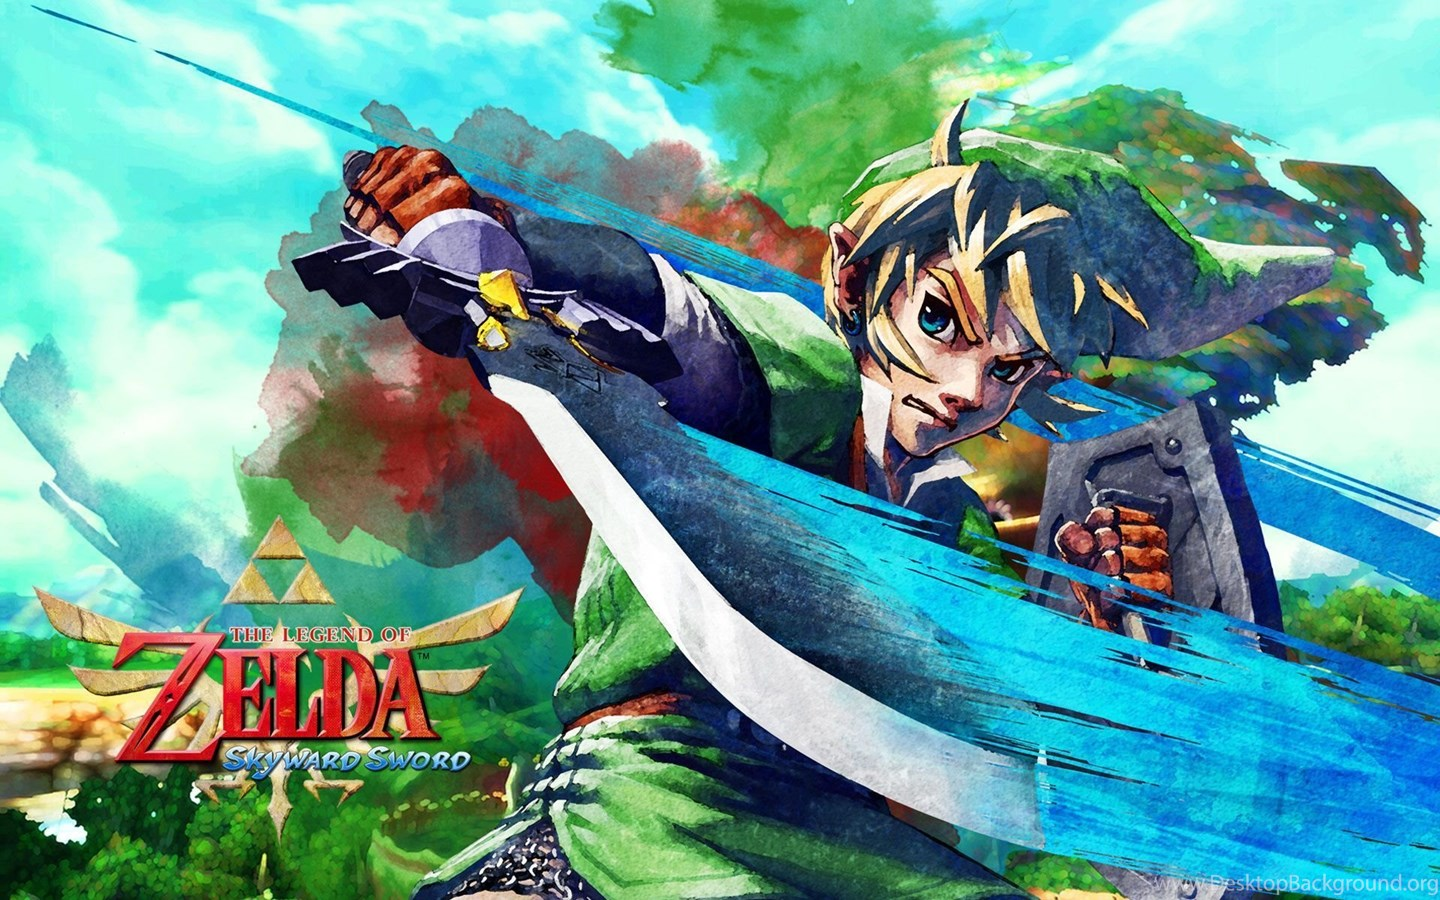 Legend of Zelda Wallpapers. by DYLZALOct 8 2015. Load 790 more images Grid  view